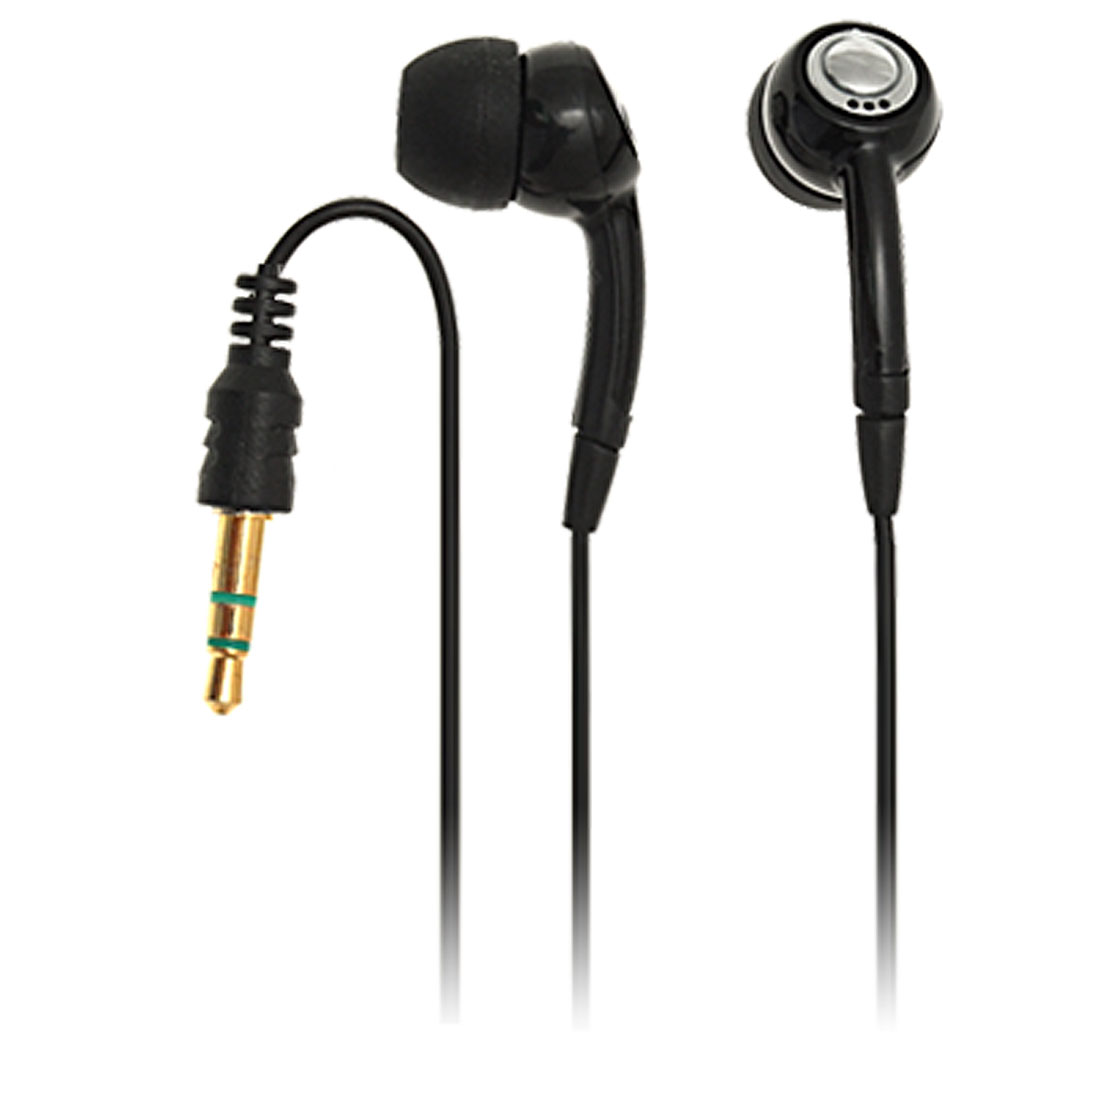 Black MP3 Headset Headphone for Nokia 6230 7610